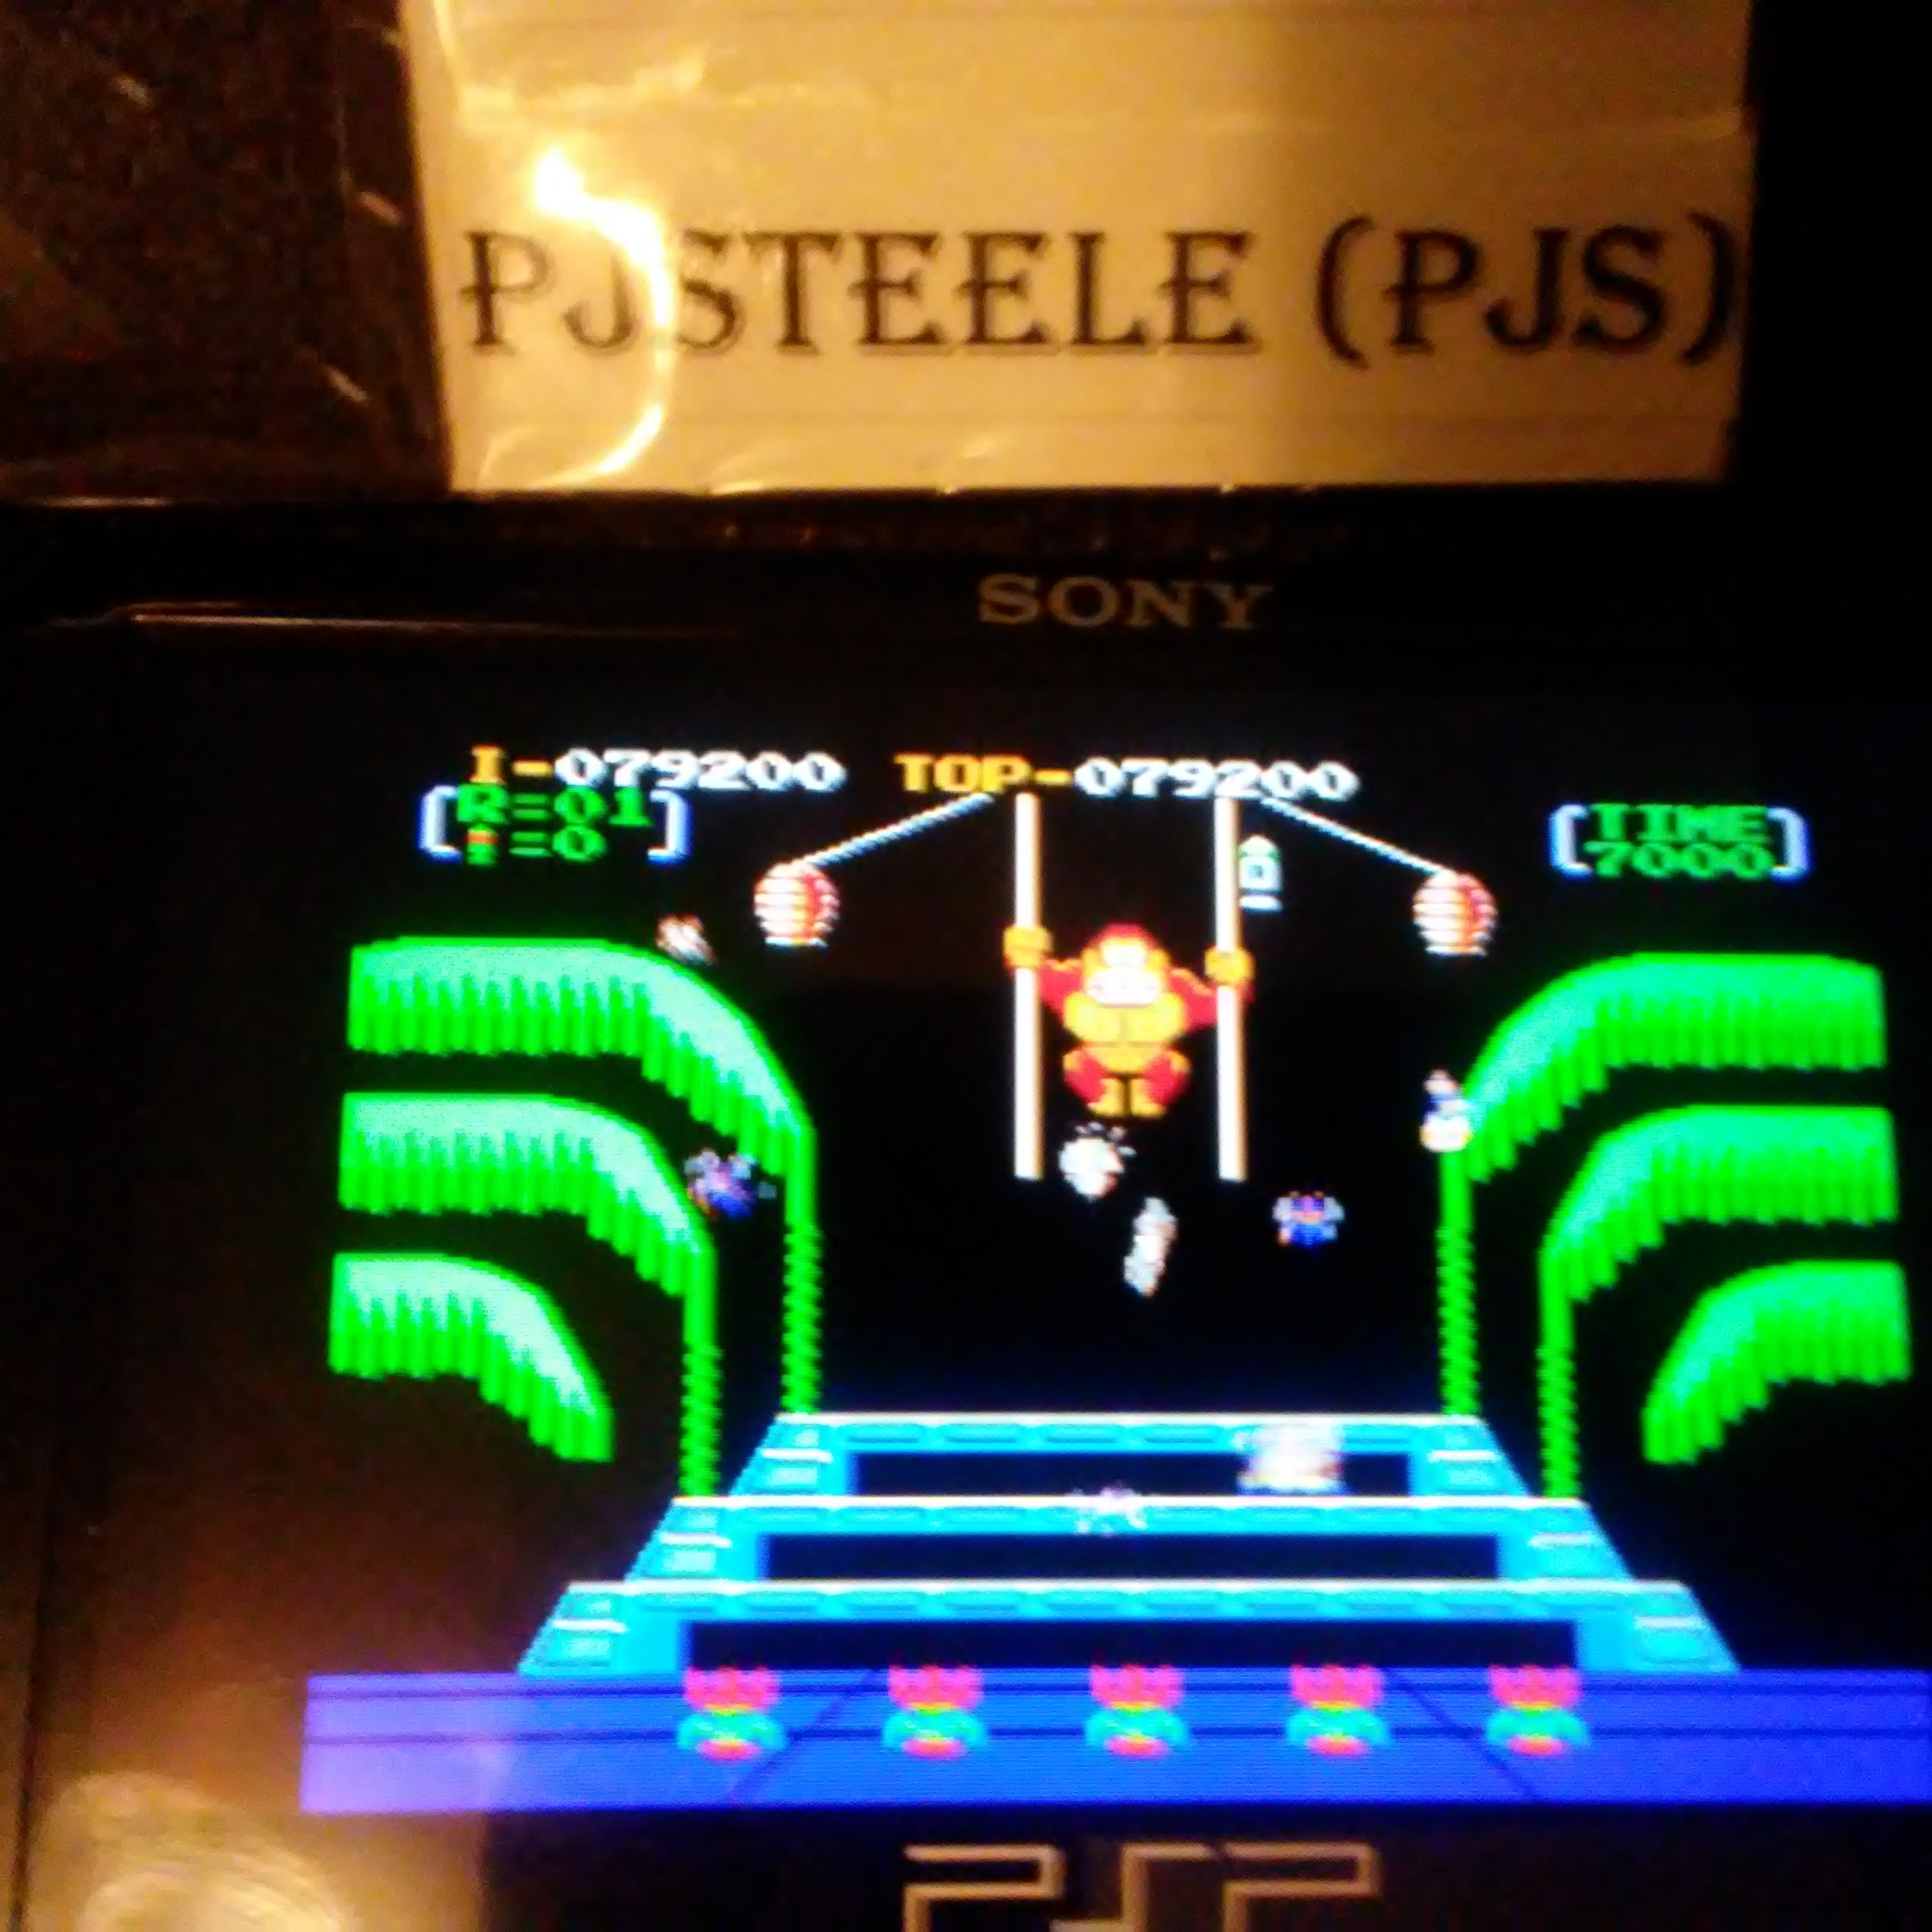 Donkey Kong 3: Game A 79,200 points